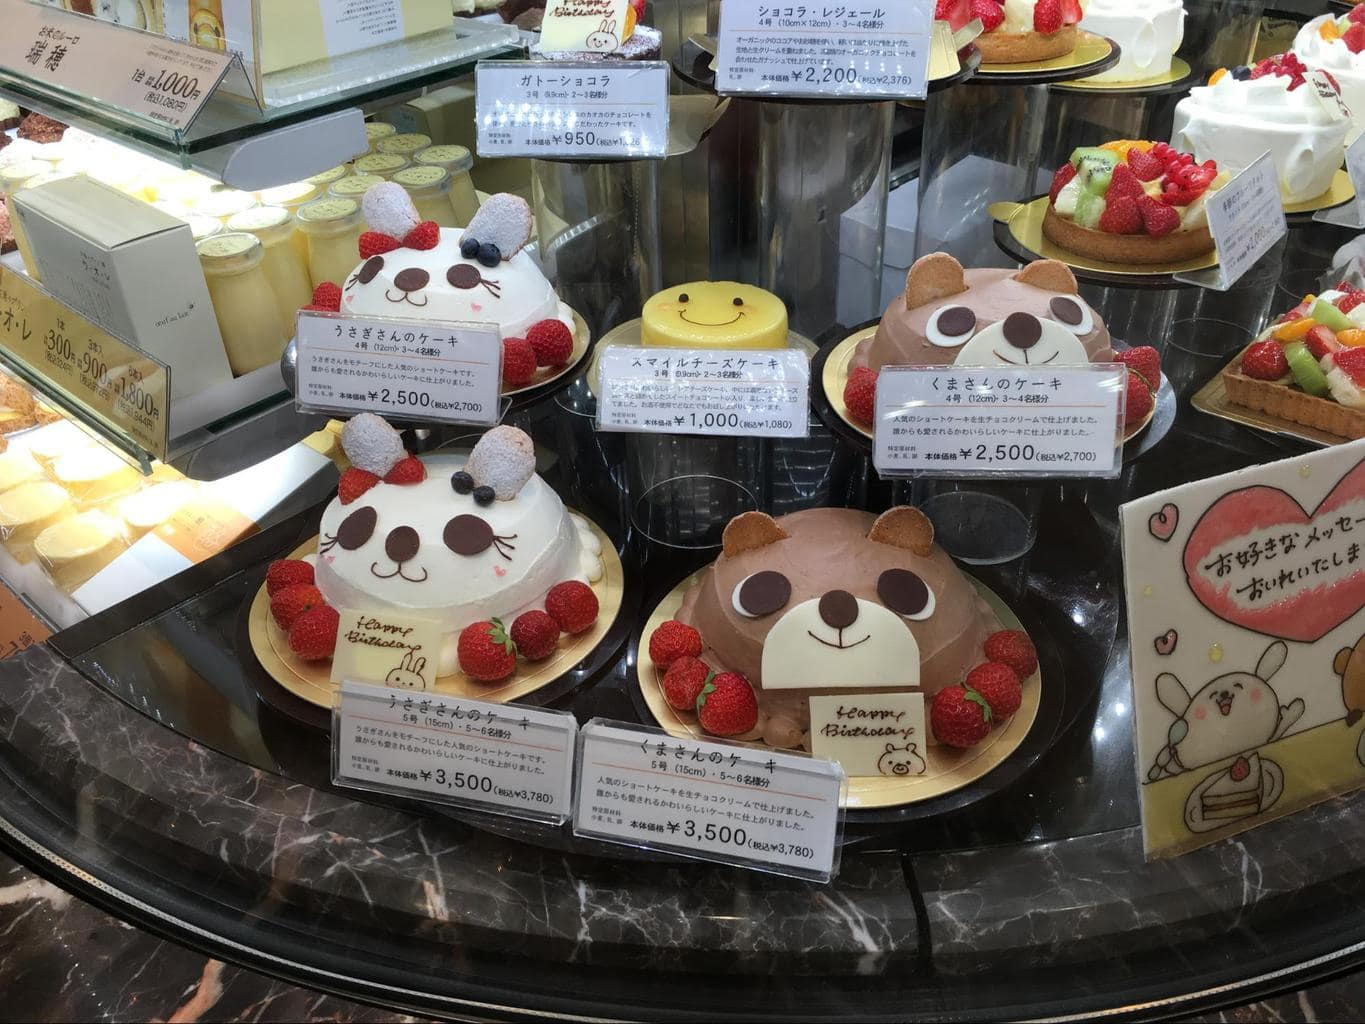 Pretty Japanese cakes